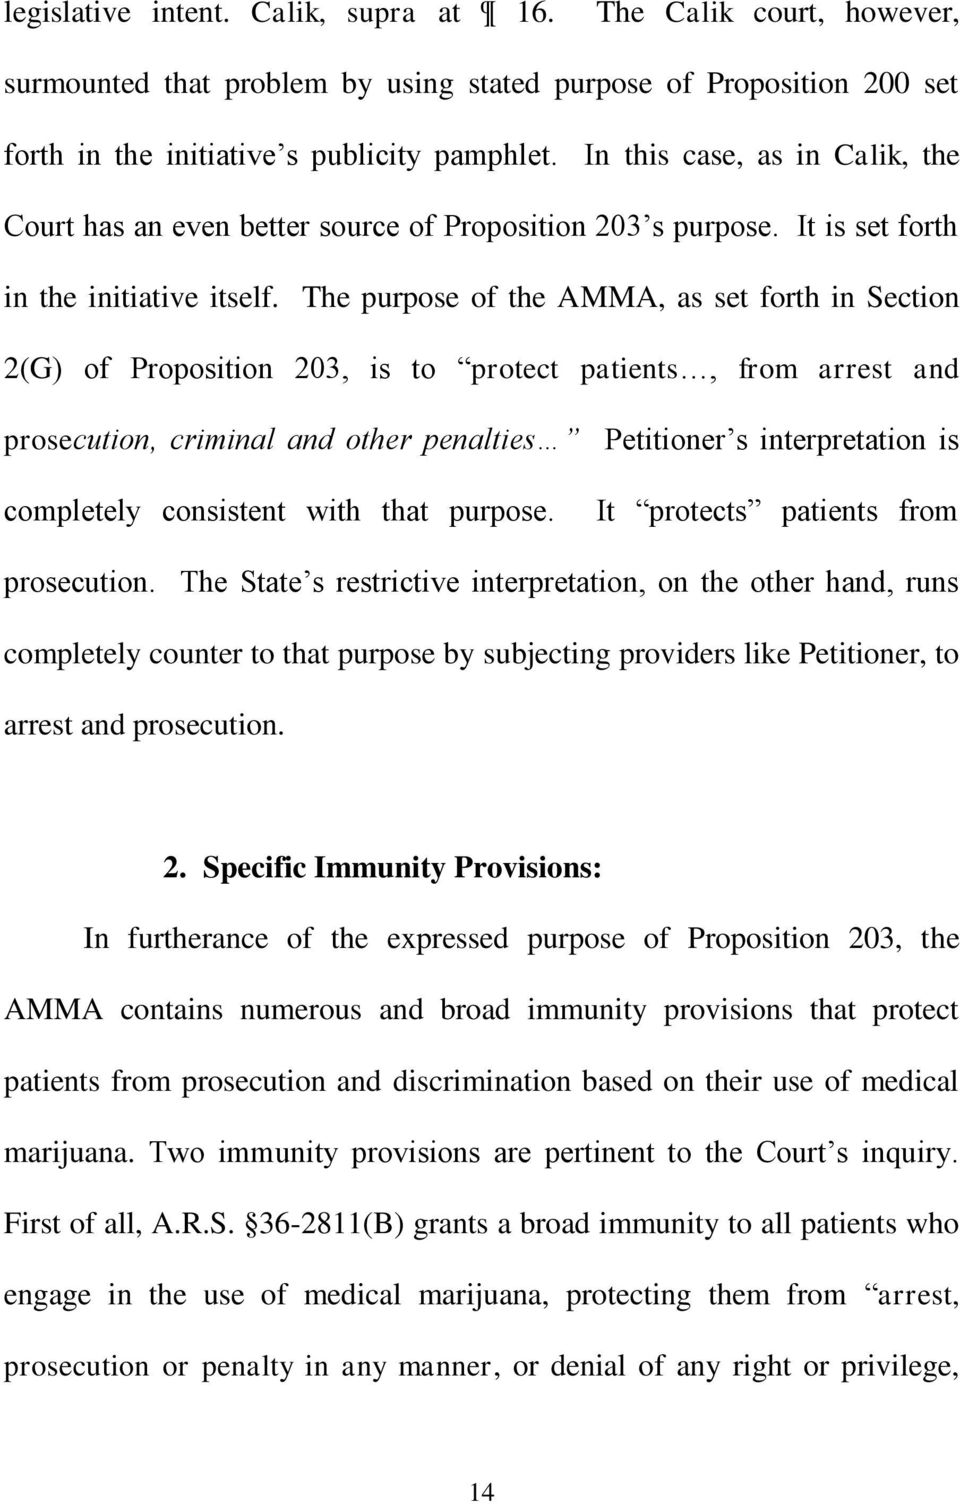 The purpose of the AMMA, as set forth in Section 2(G of Proposition 203, is to protect patients, from arrest and prosecution, criminal and other penalties Petitioner s interpretation is completely